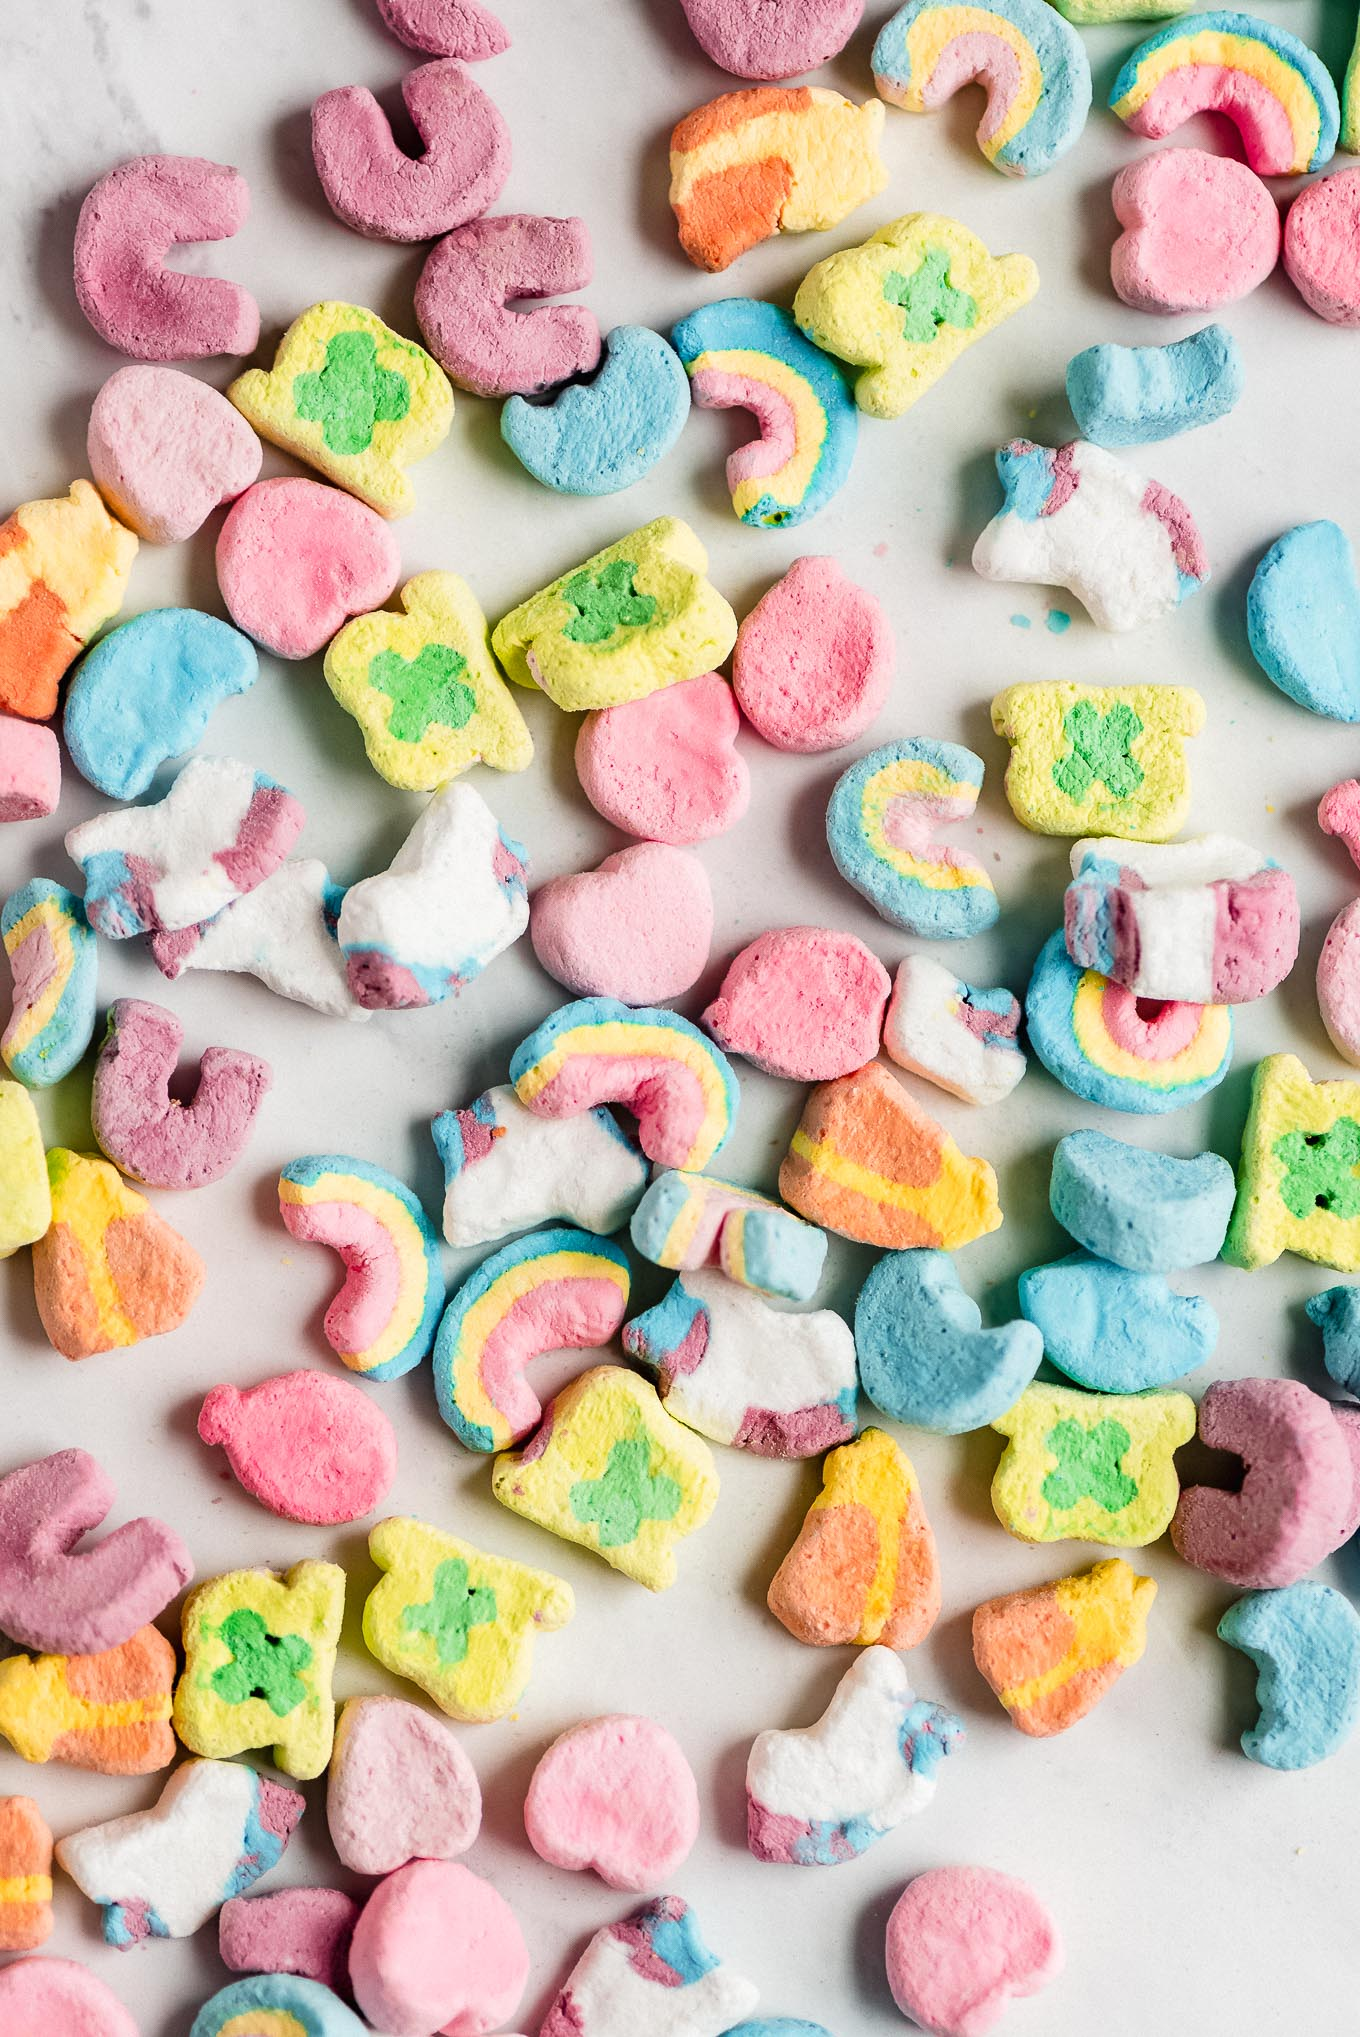 Lucky Charm marshmallows on a marble counter.